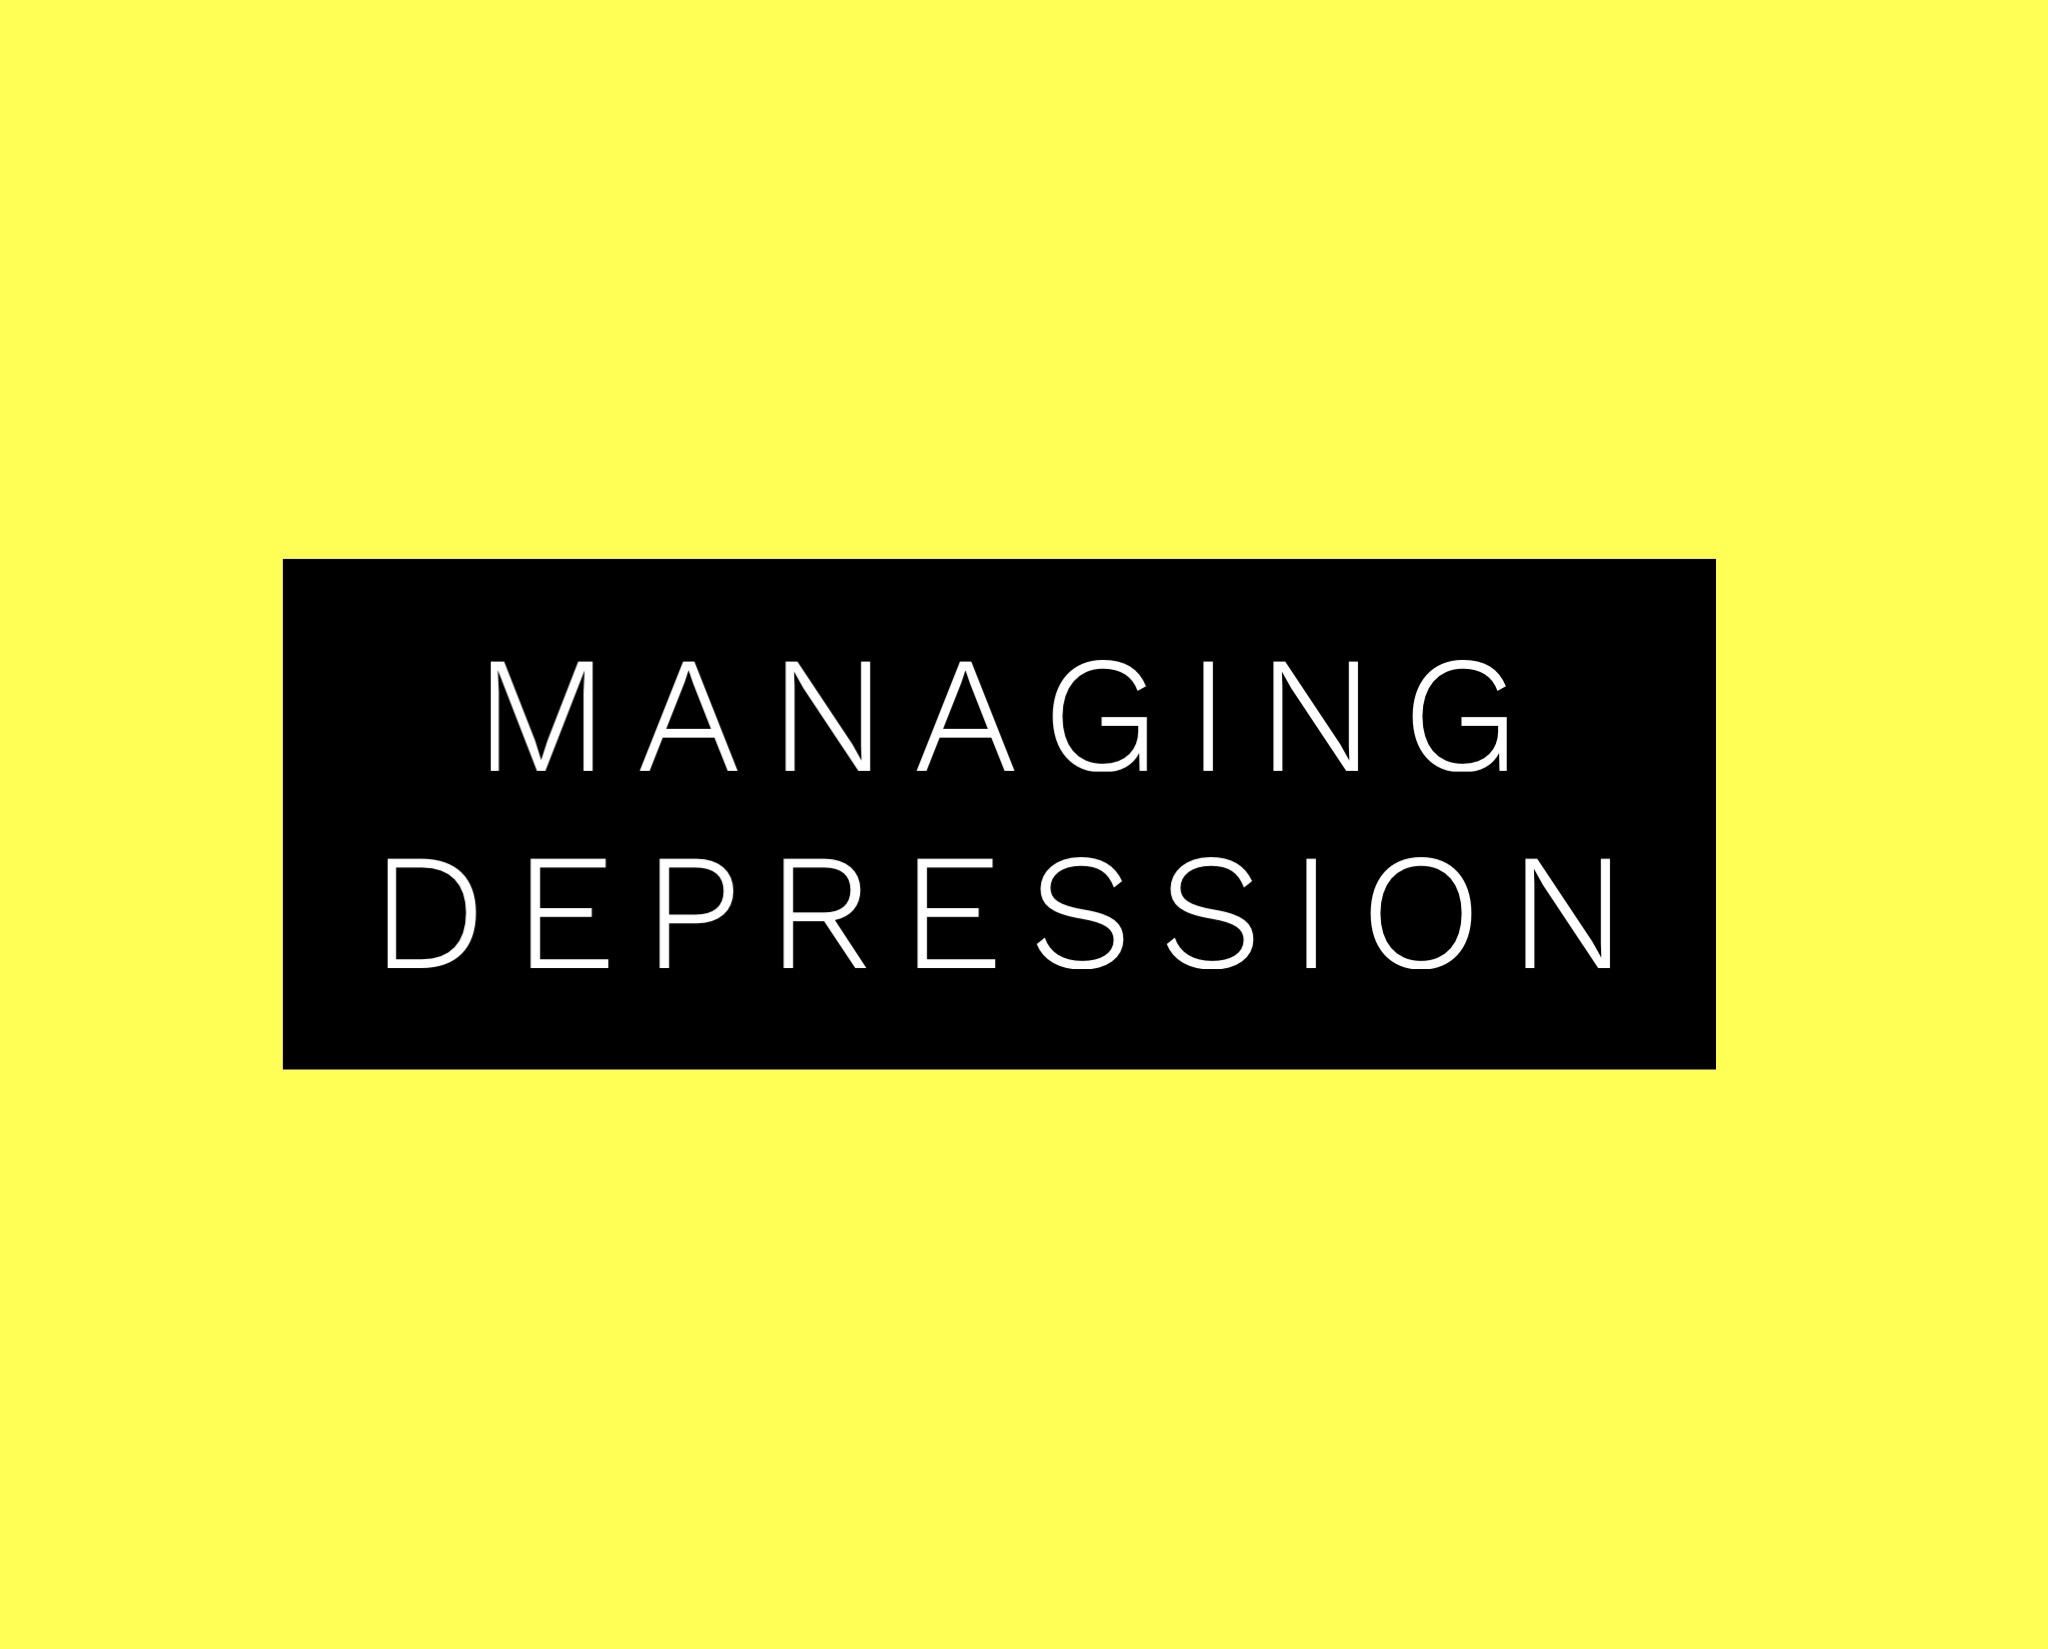 Tips For Managing Depression